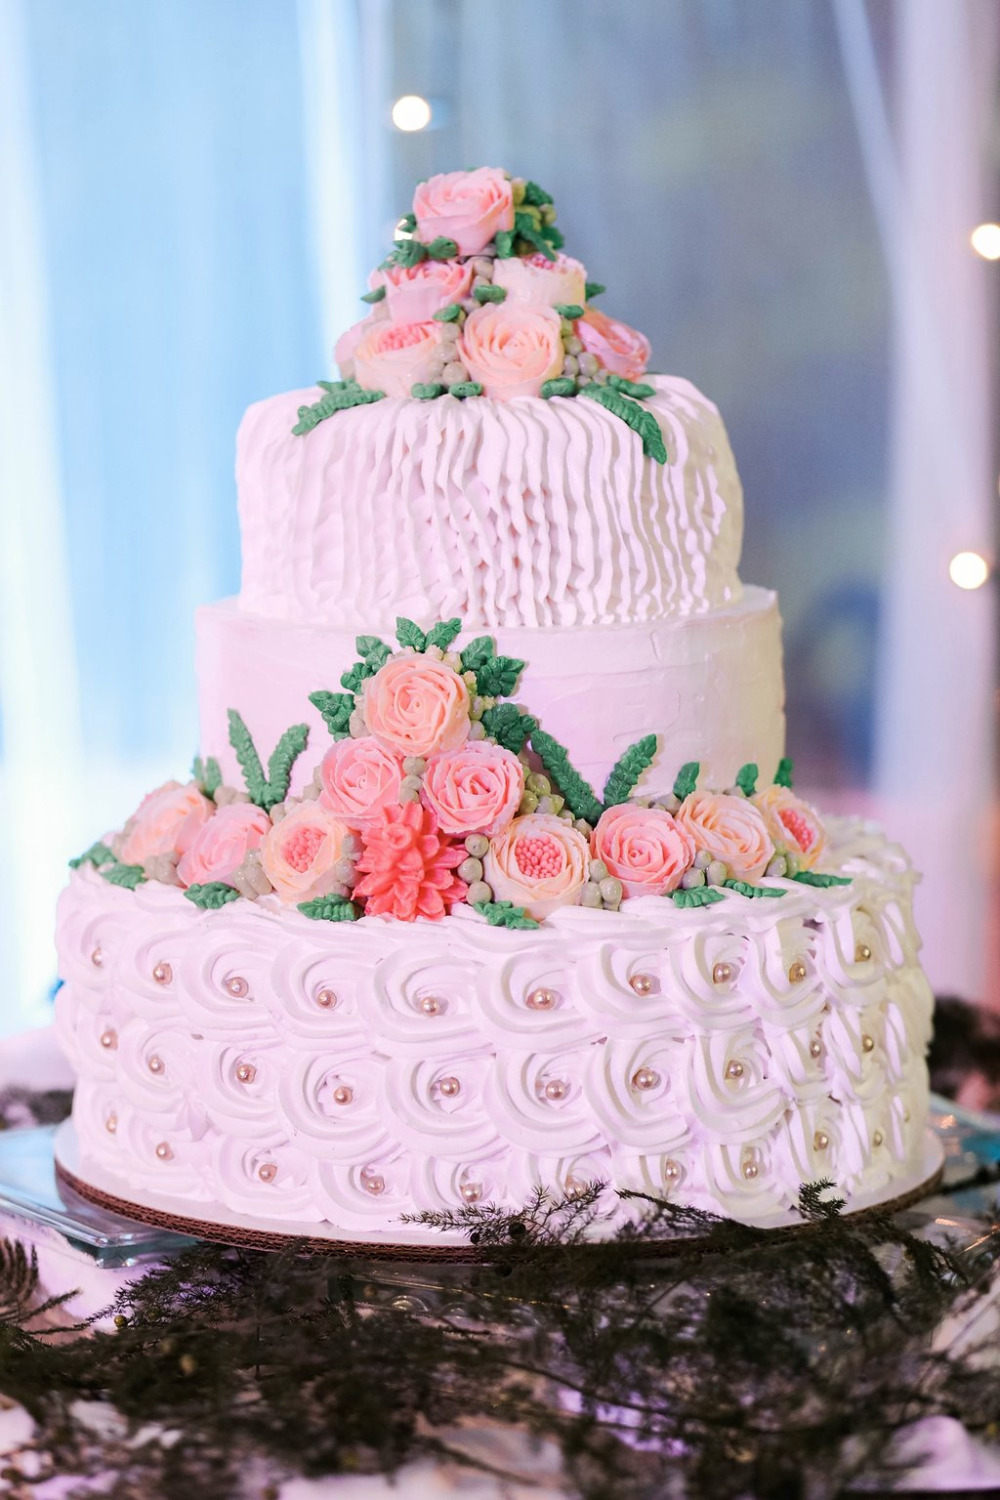 white and pink wedding cake made by the bride